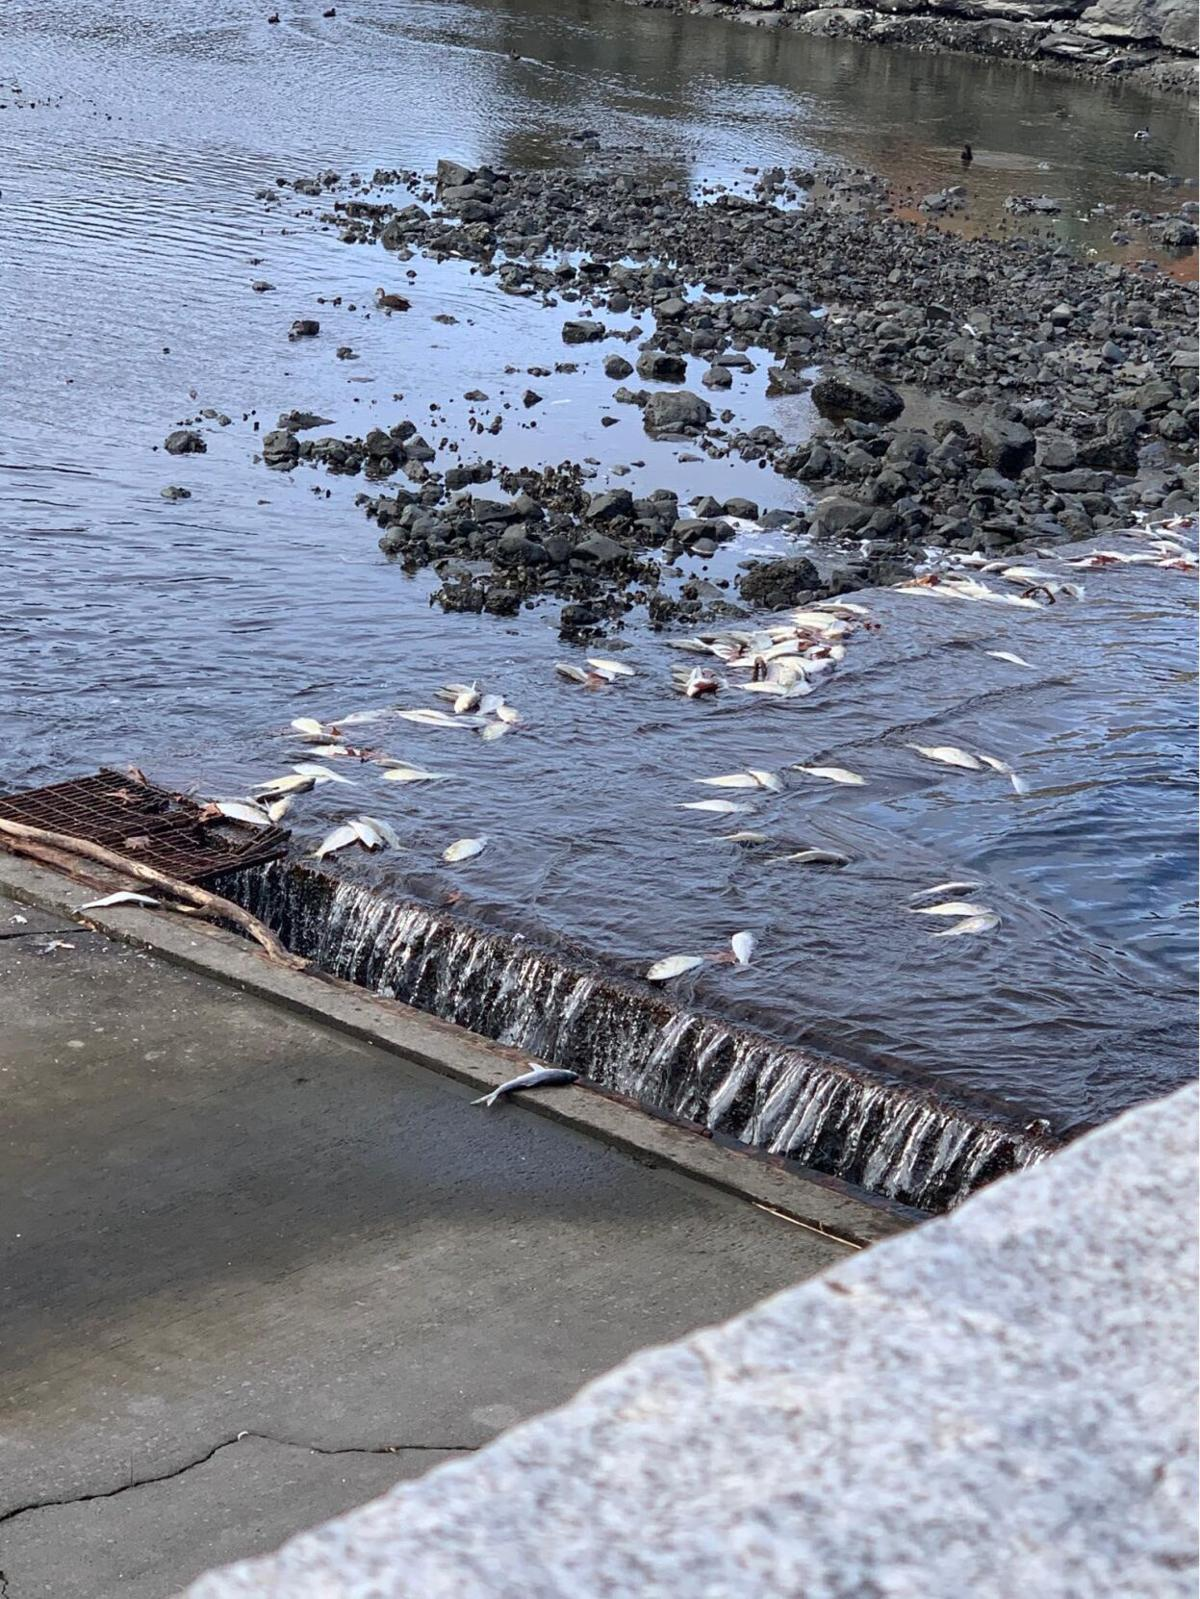 Dead fish wash ashore in Darien, surrounding area